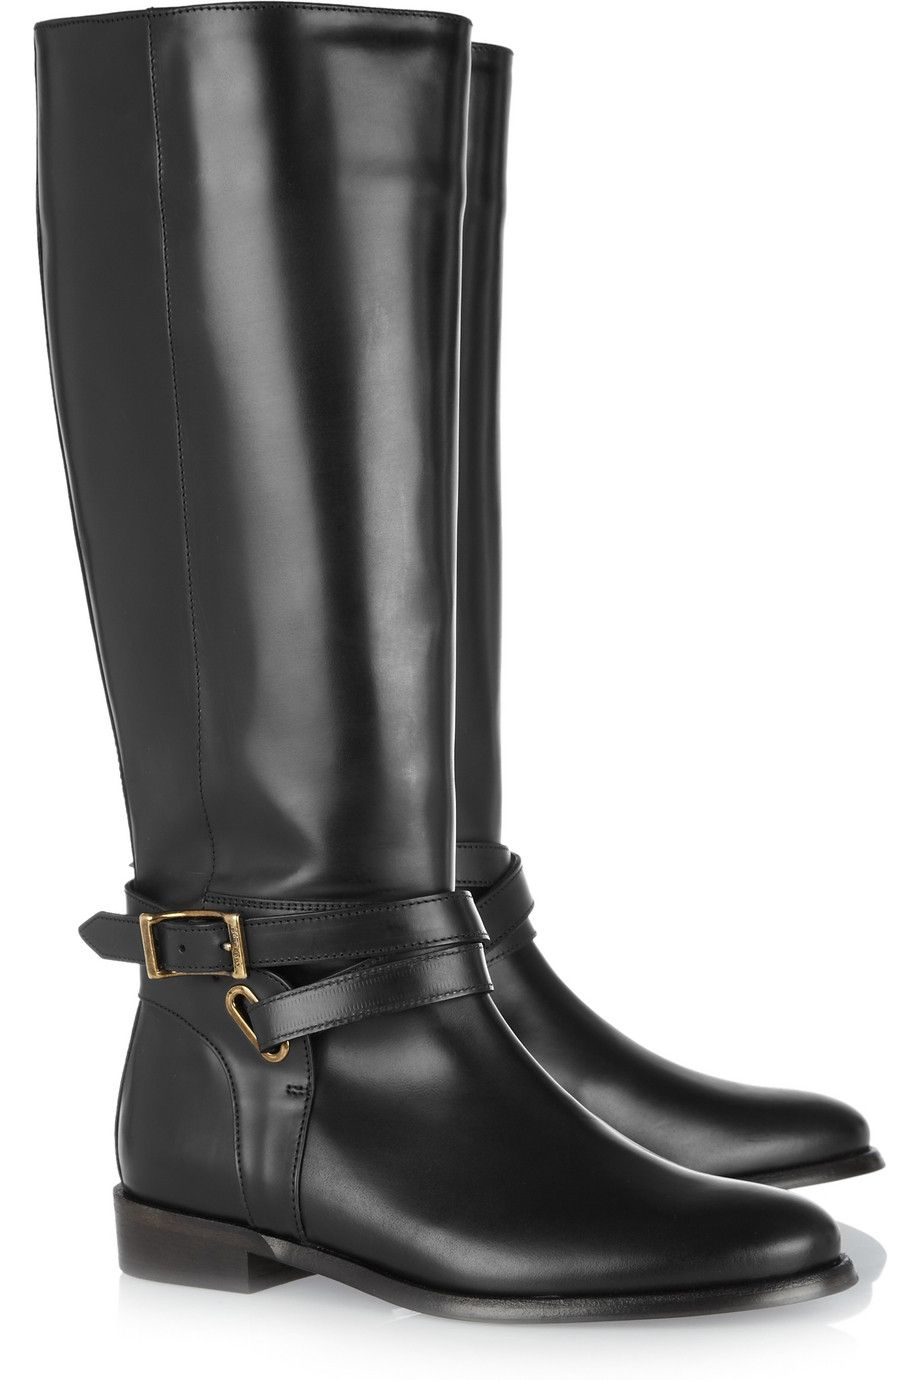 078611a10a2 Burberry Shoes   Accessories Leather riding boots